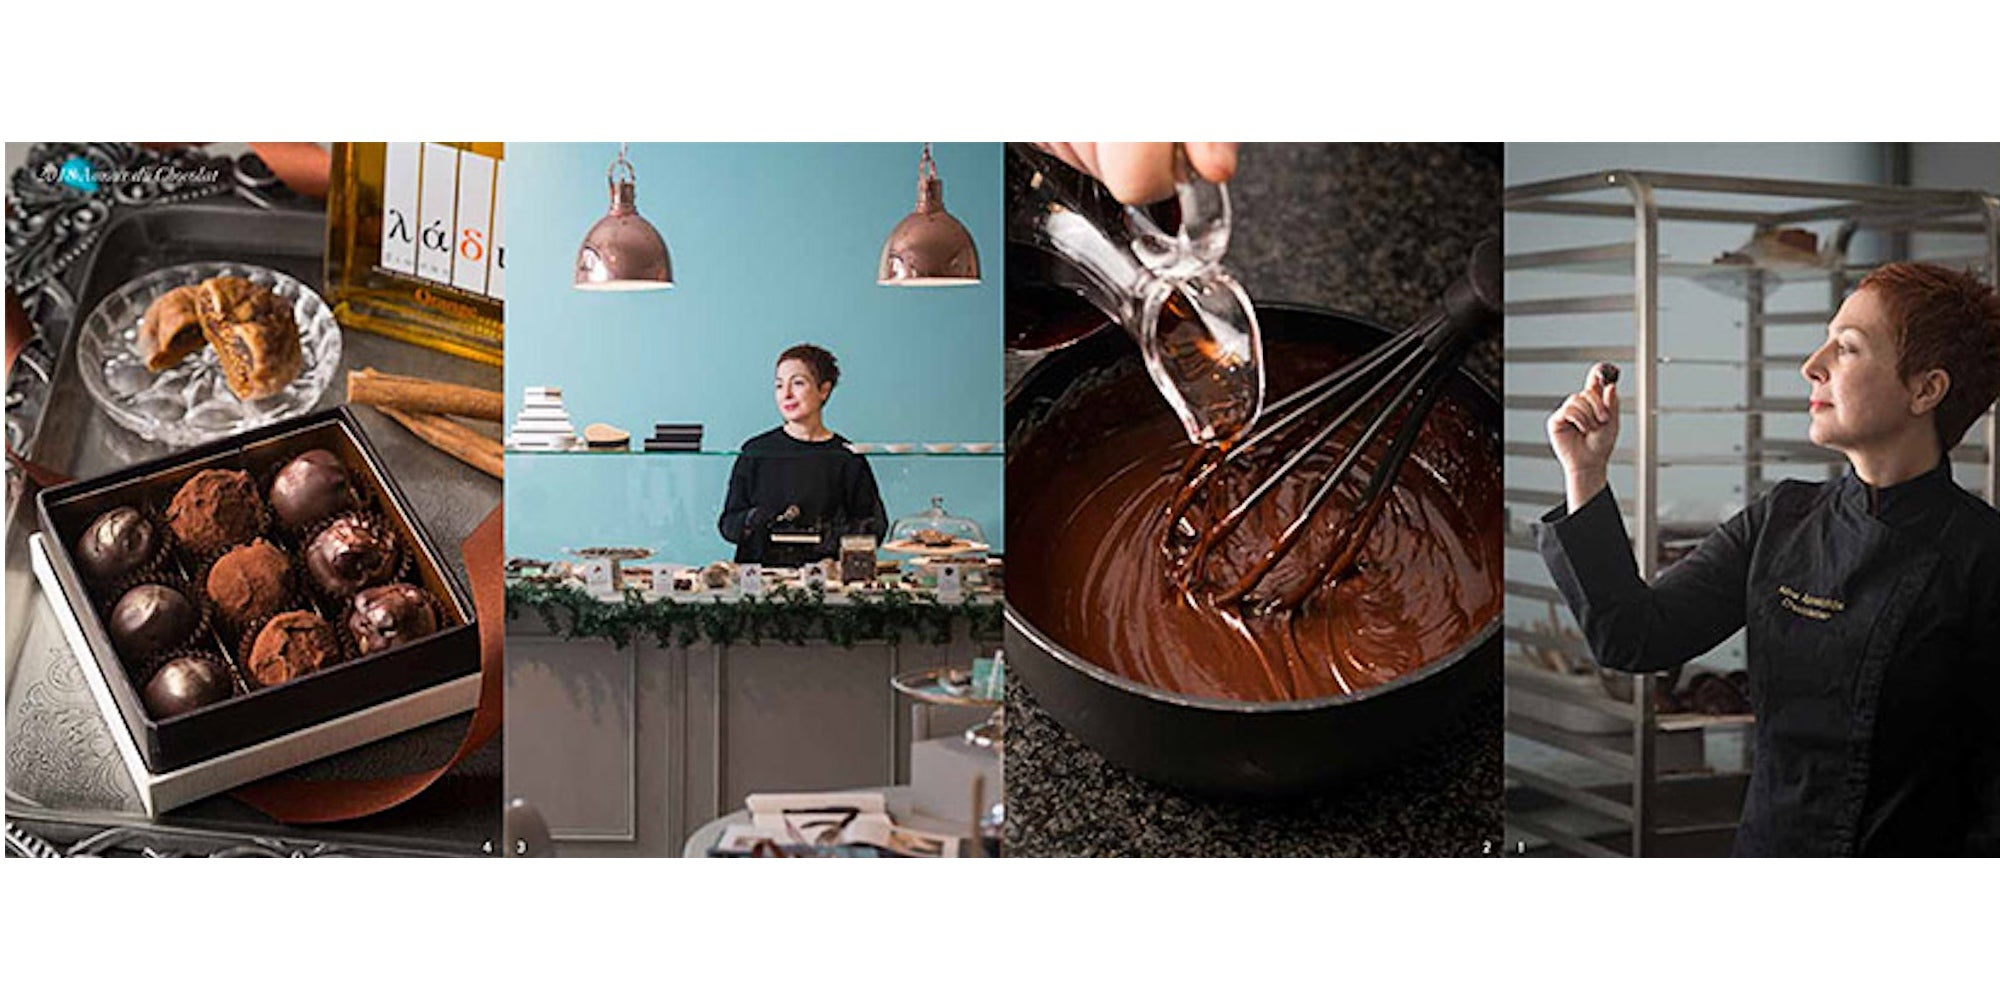 Chocolate truffles with orange agrumato olive oil recipe by Mina Apostolidis and Grecian Purveyor. Gourmet grocer of best Greek products in Sydney, Melbourne, Brisbane, Adelaide and Perth.